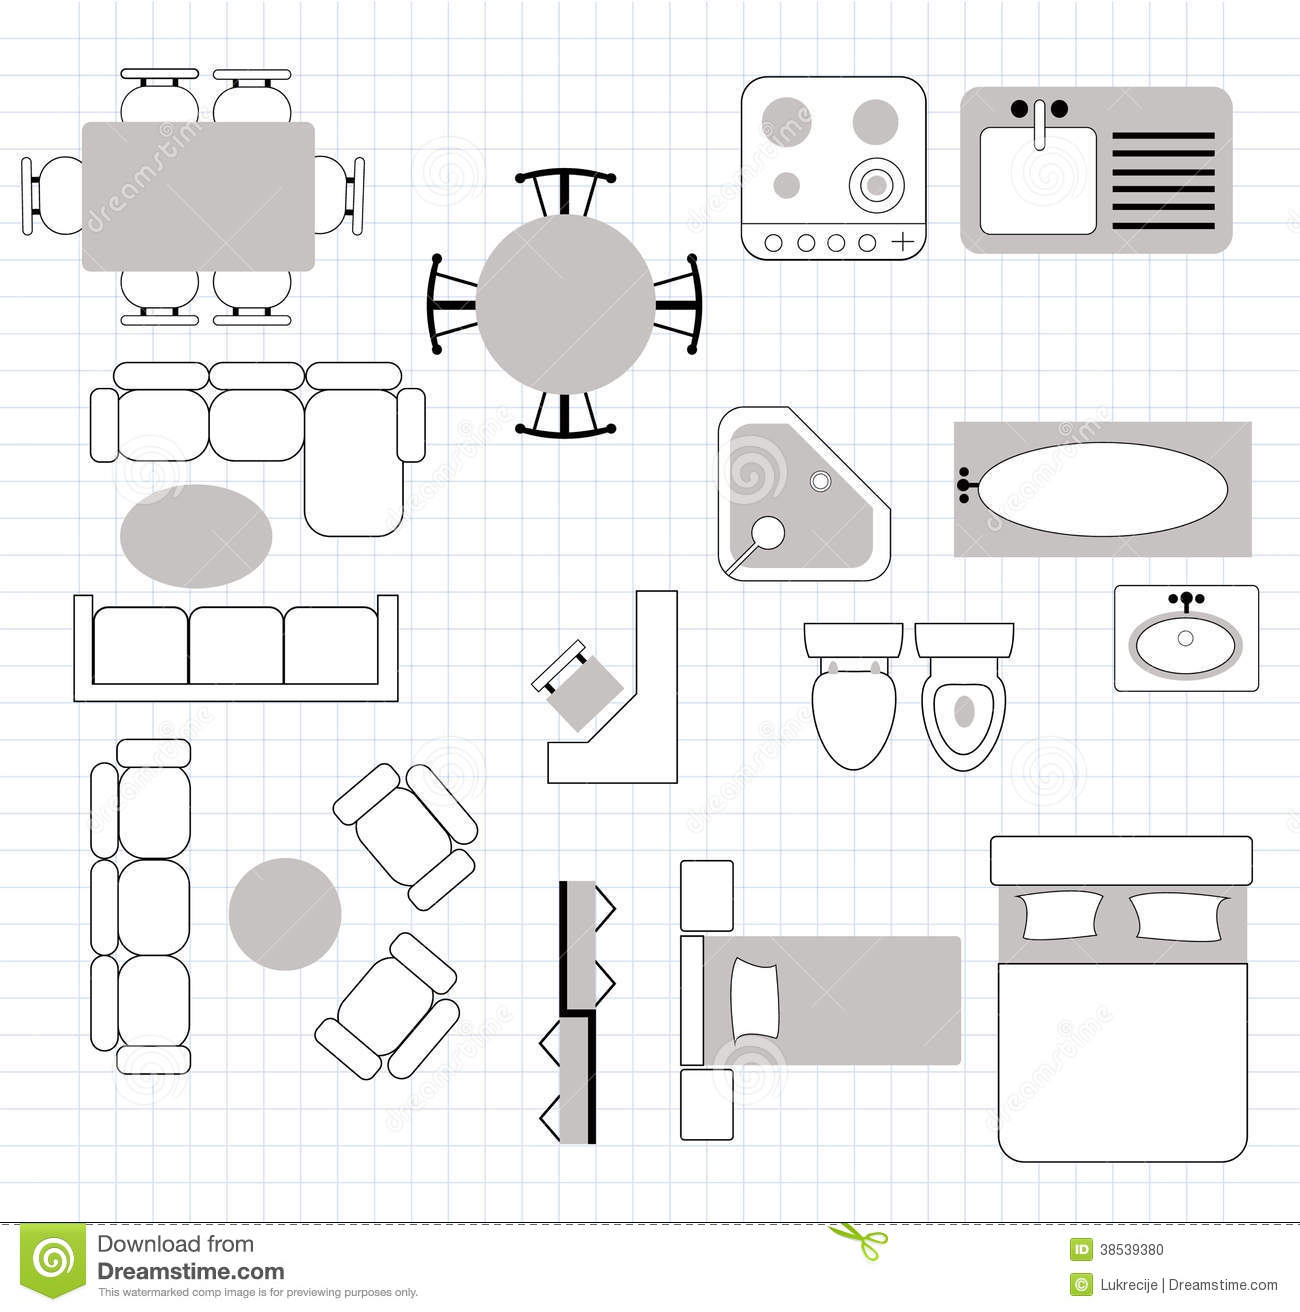 Floor plan with furniture stock vector. Illustration of